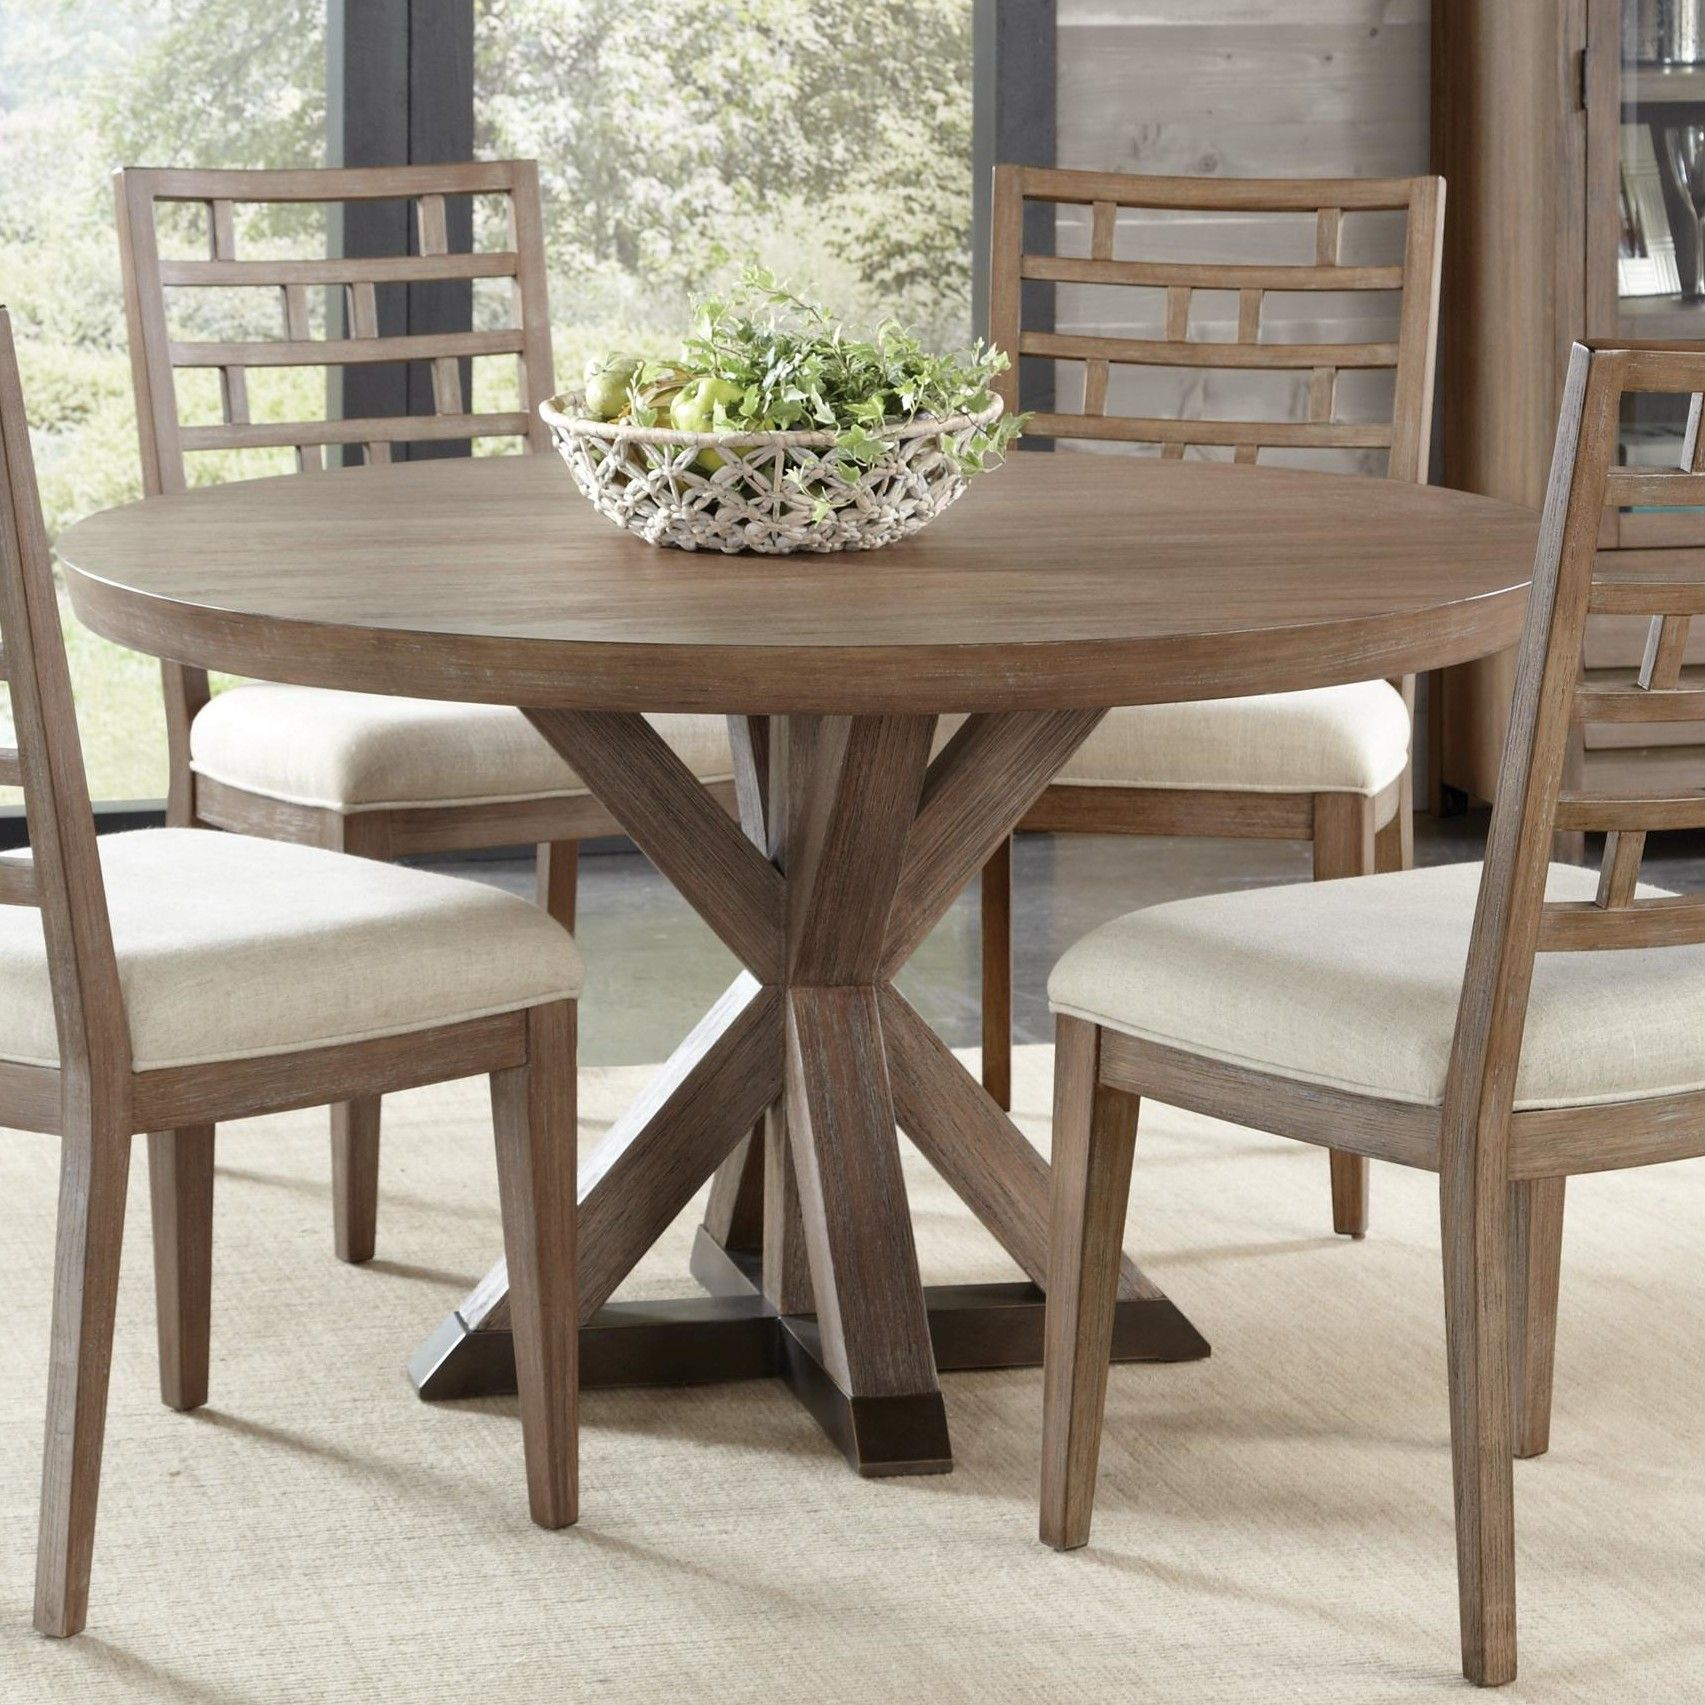 Queanbeyan Solid Wood Dining Table | Round Wood Dining Table For Most Up To Date Brooks Round Dining Tables (View 21 of 25)